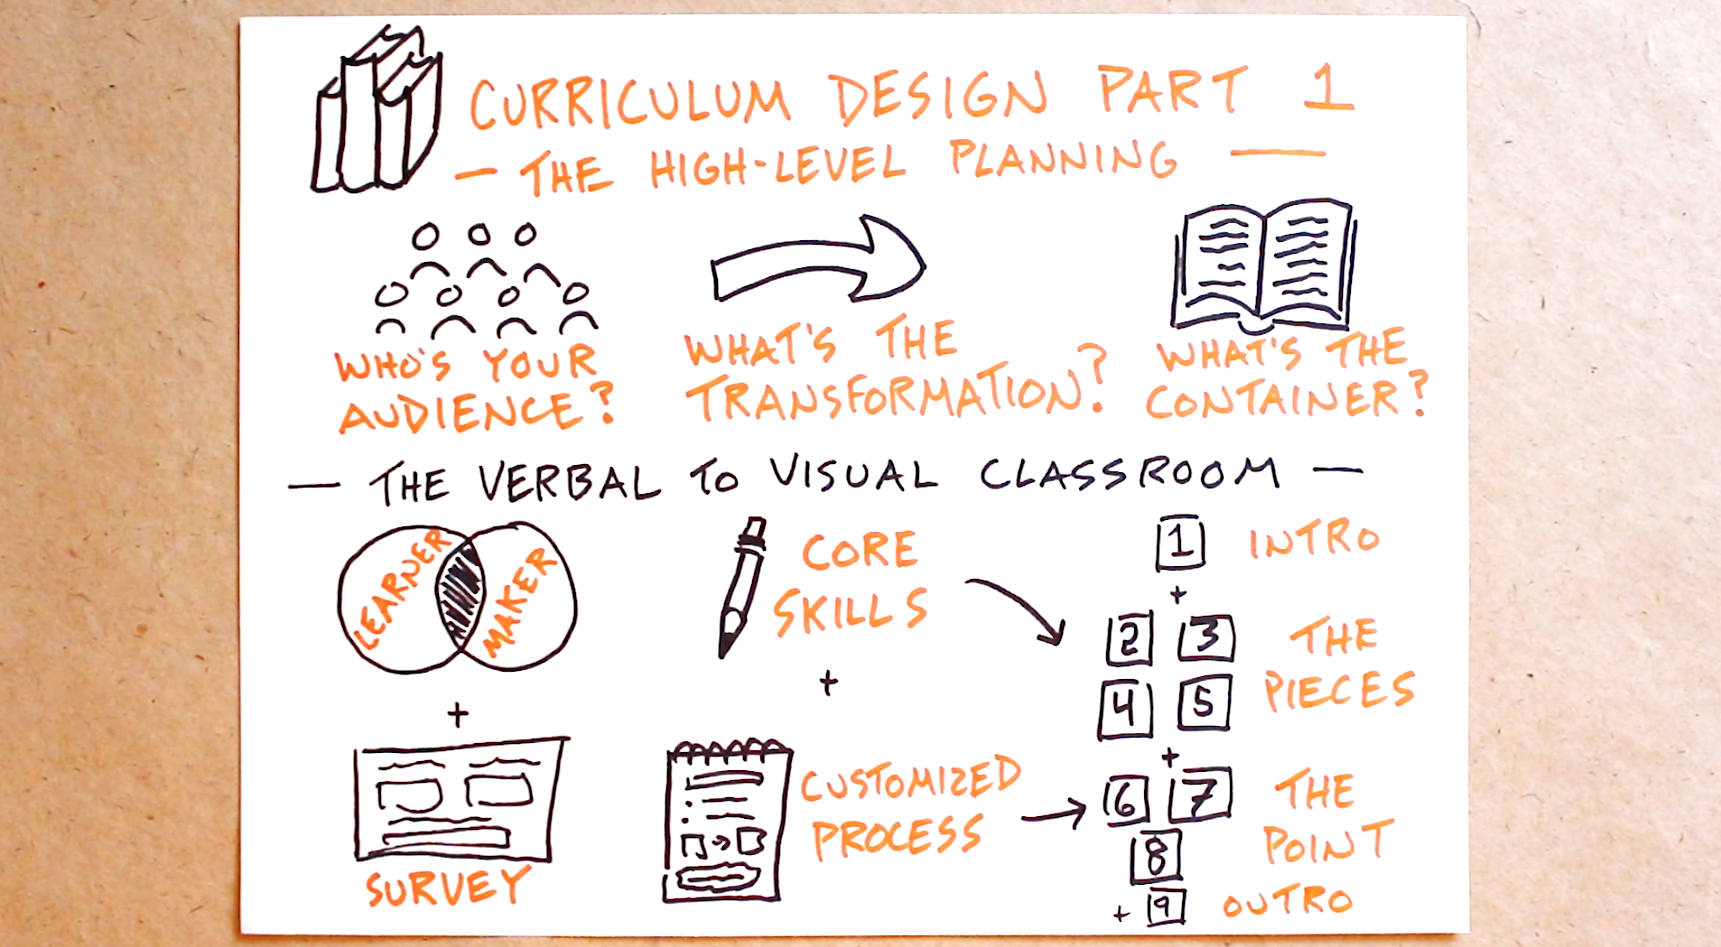 Classroom Curriculum Design ~ Curriculum design part the high level planning verbal